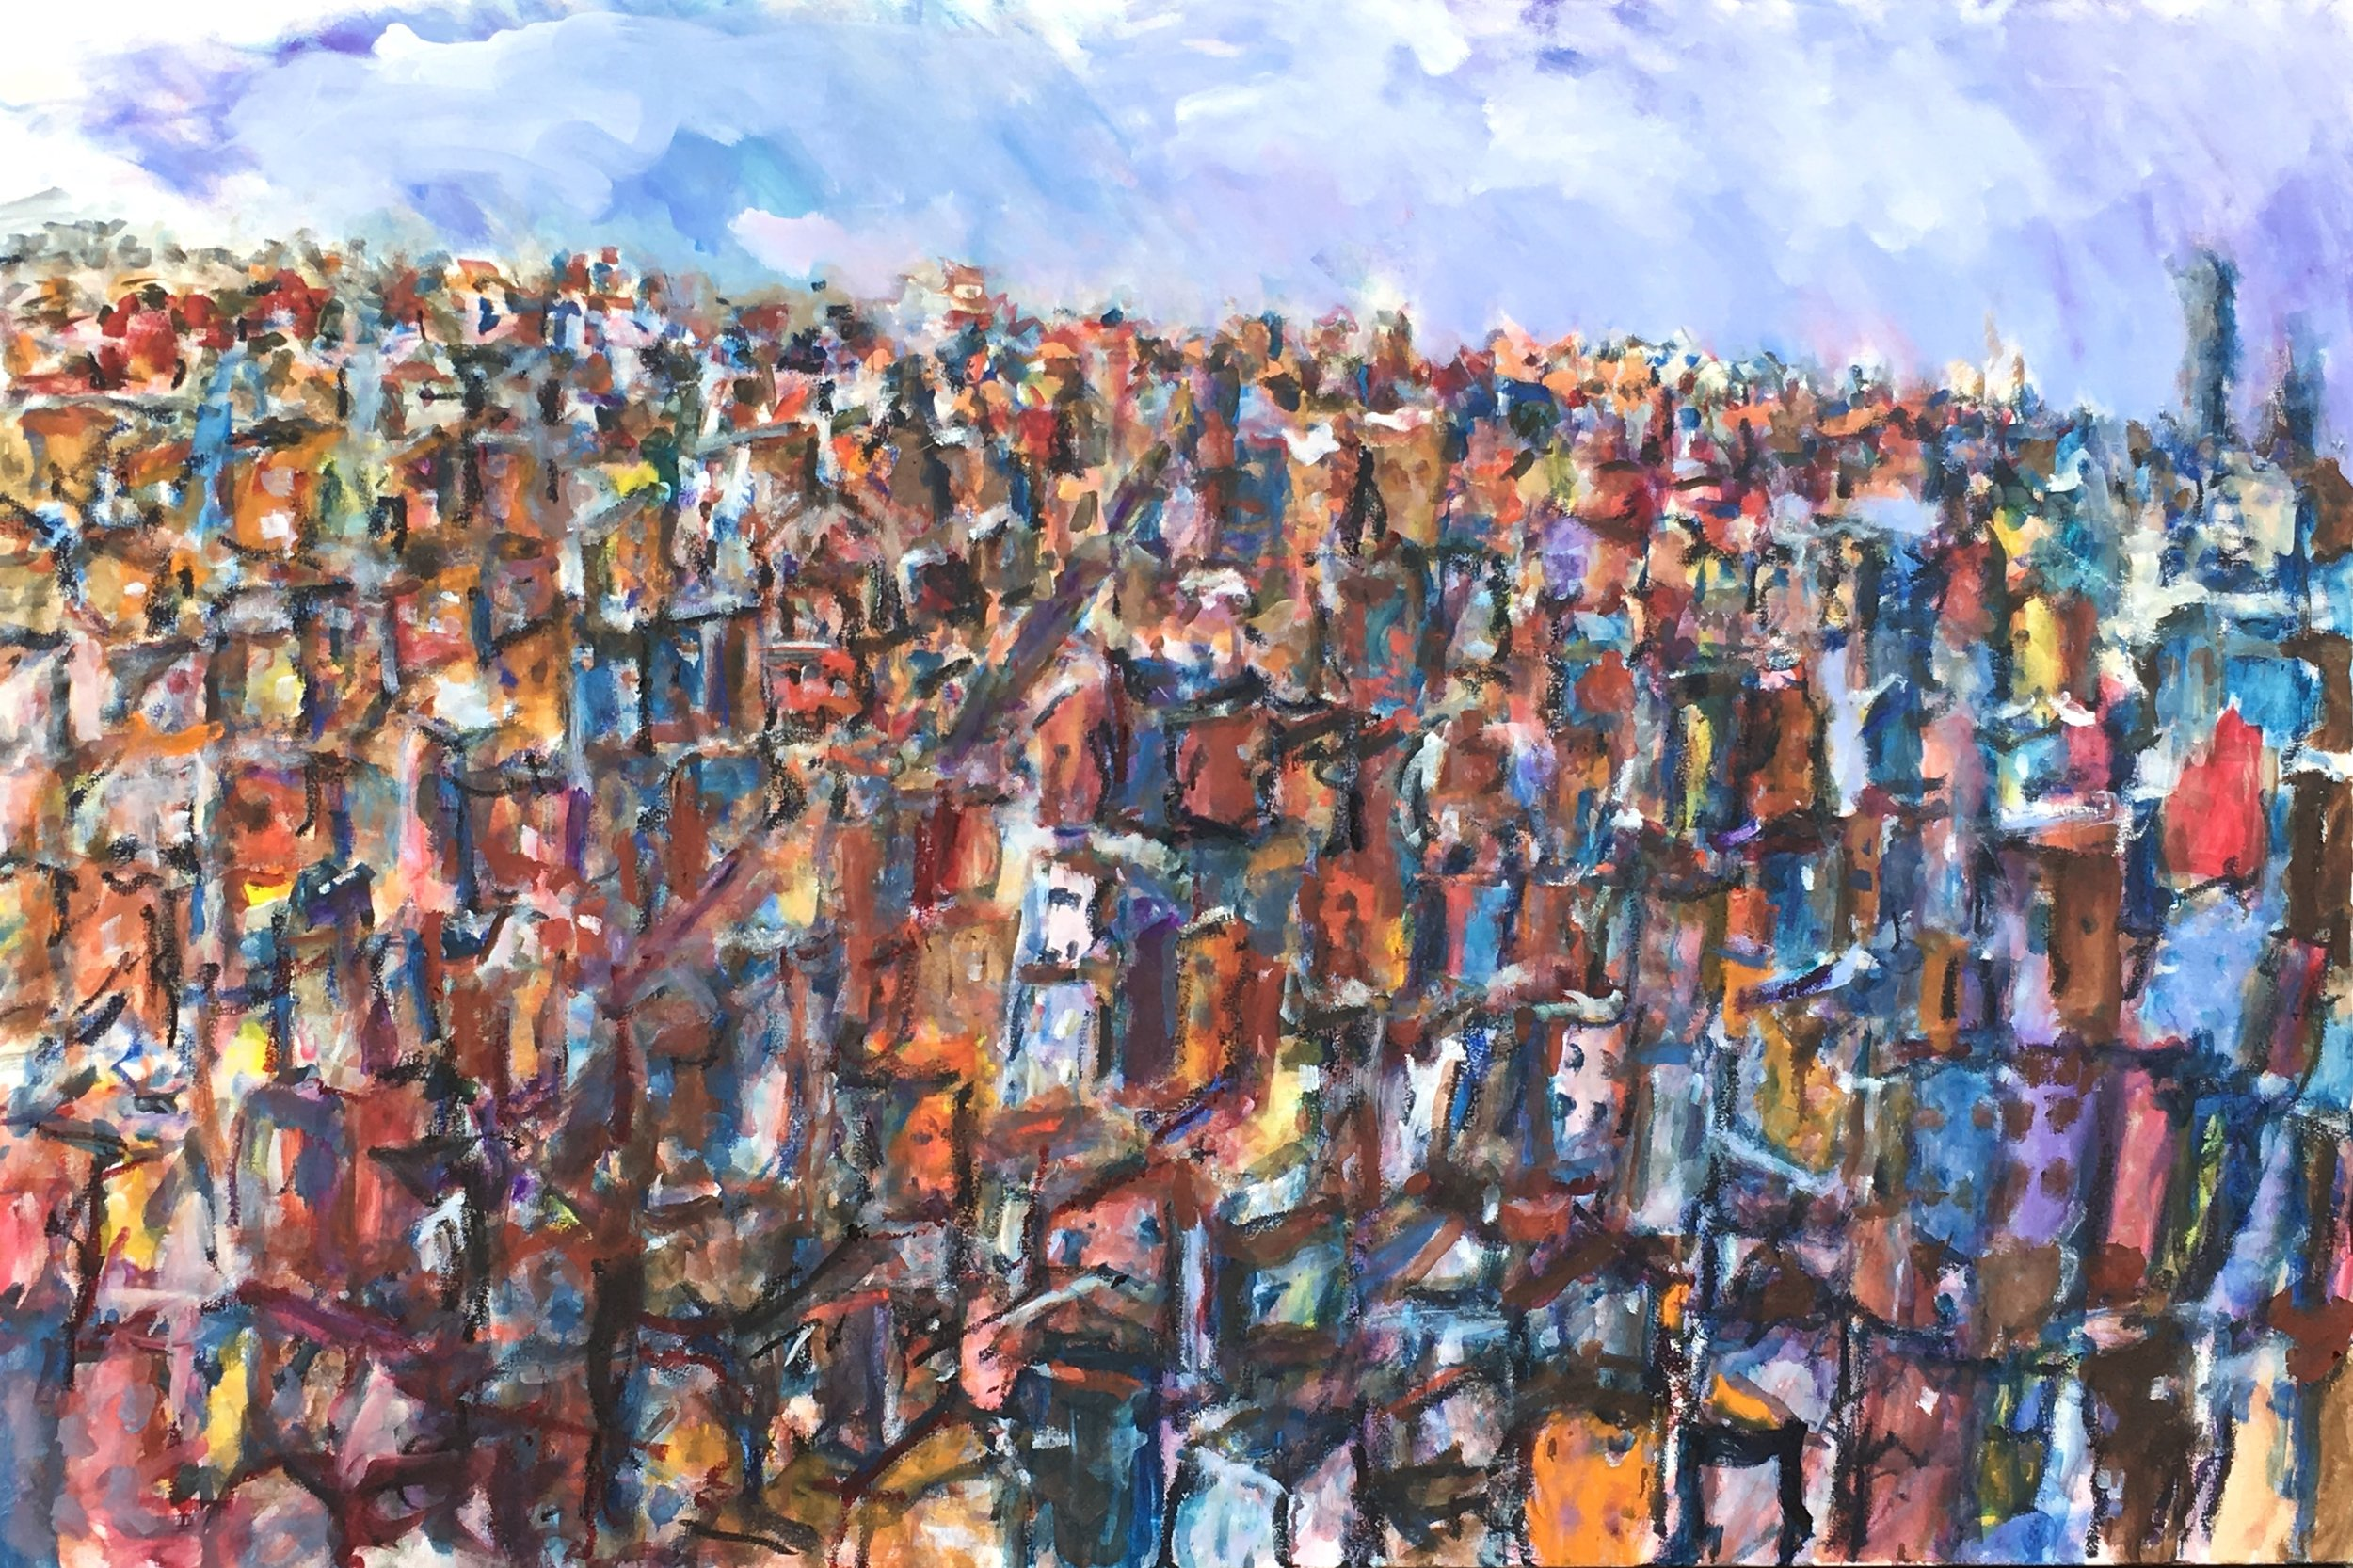 Kristine Flannery_ Imaginary City- Compassion - Original 48 x 72 - Oil on Canvas.jpg